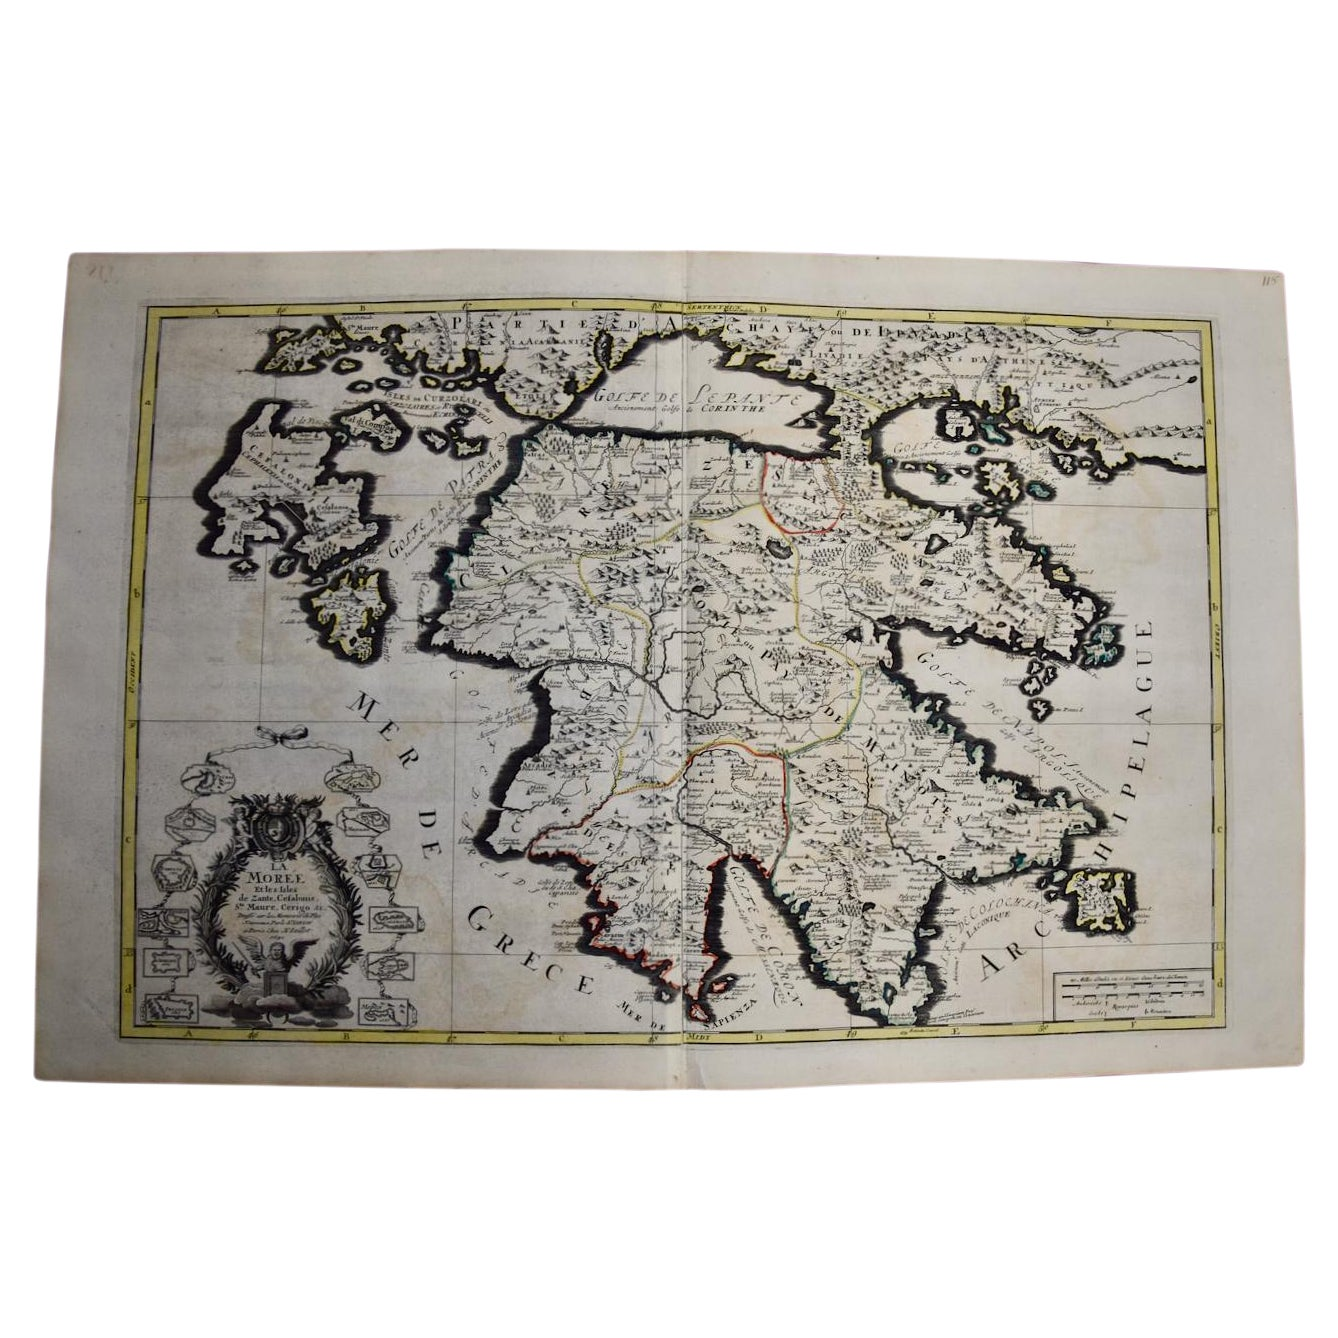 Large 17th C. Hand-colored Map of Southern Greece by Sanson and Jaillot